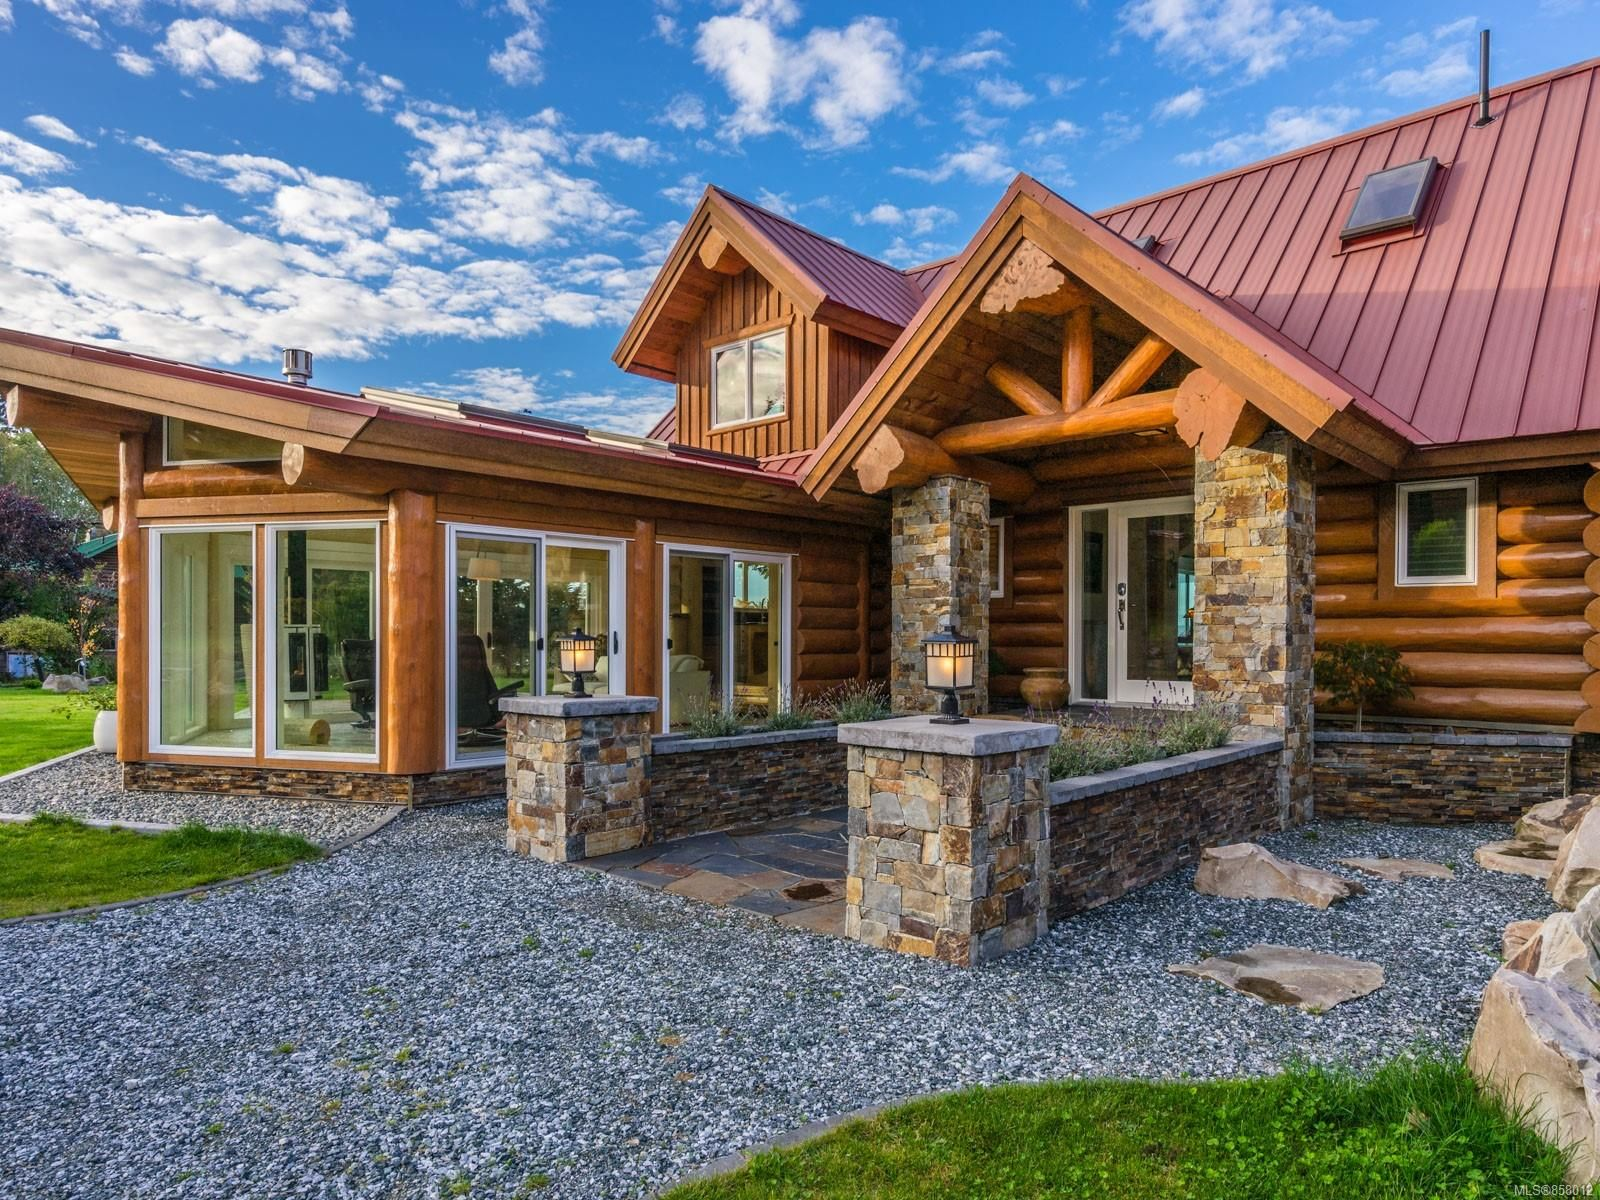 Photo 87: Photos: 6030 MINE Rd in : NI Port McNeill House for sale (North Island)  : MLS®# 858012